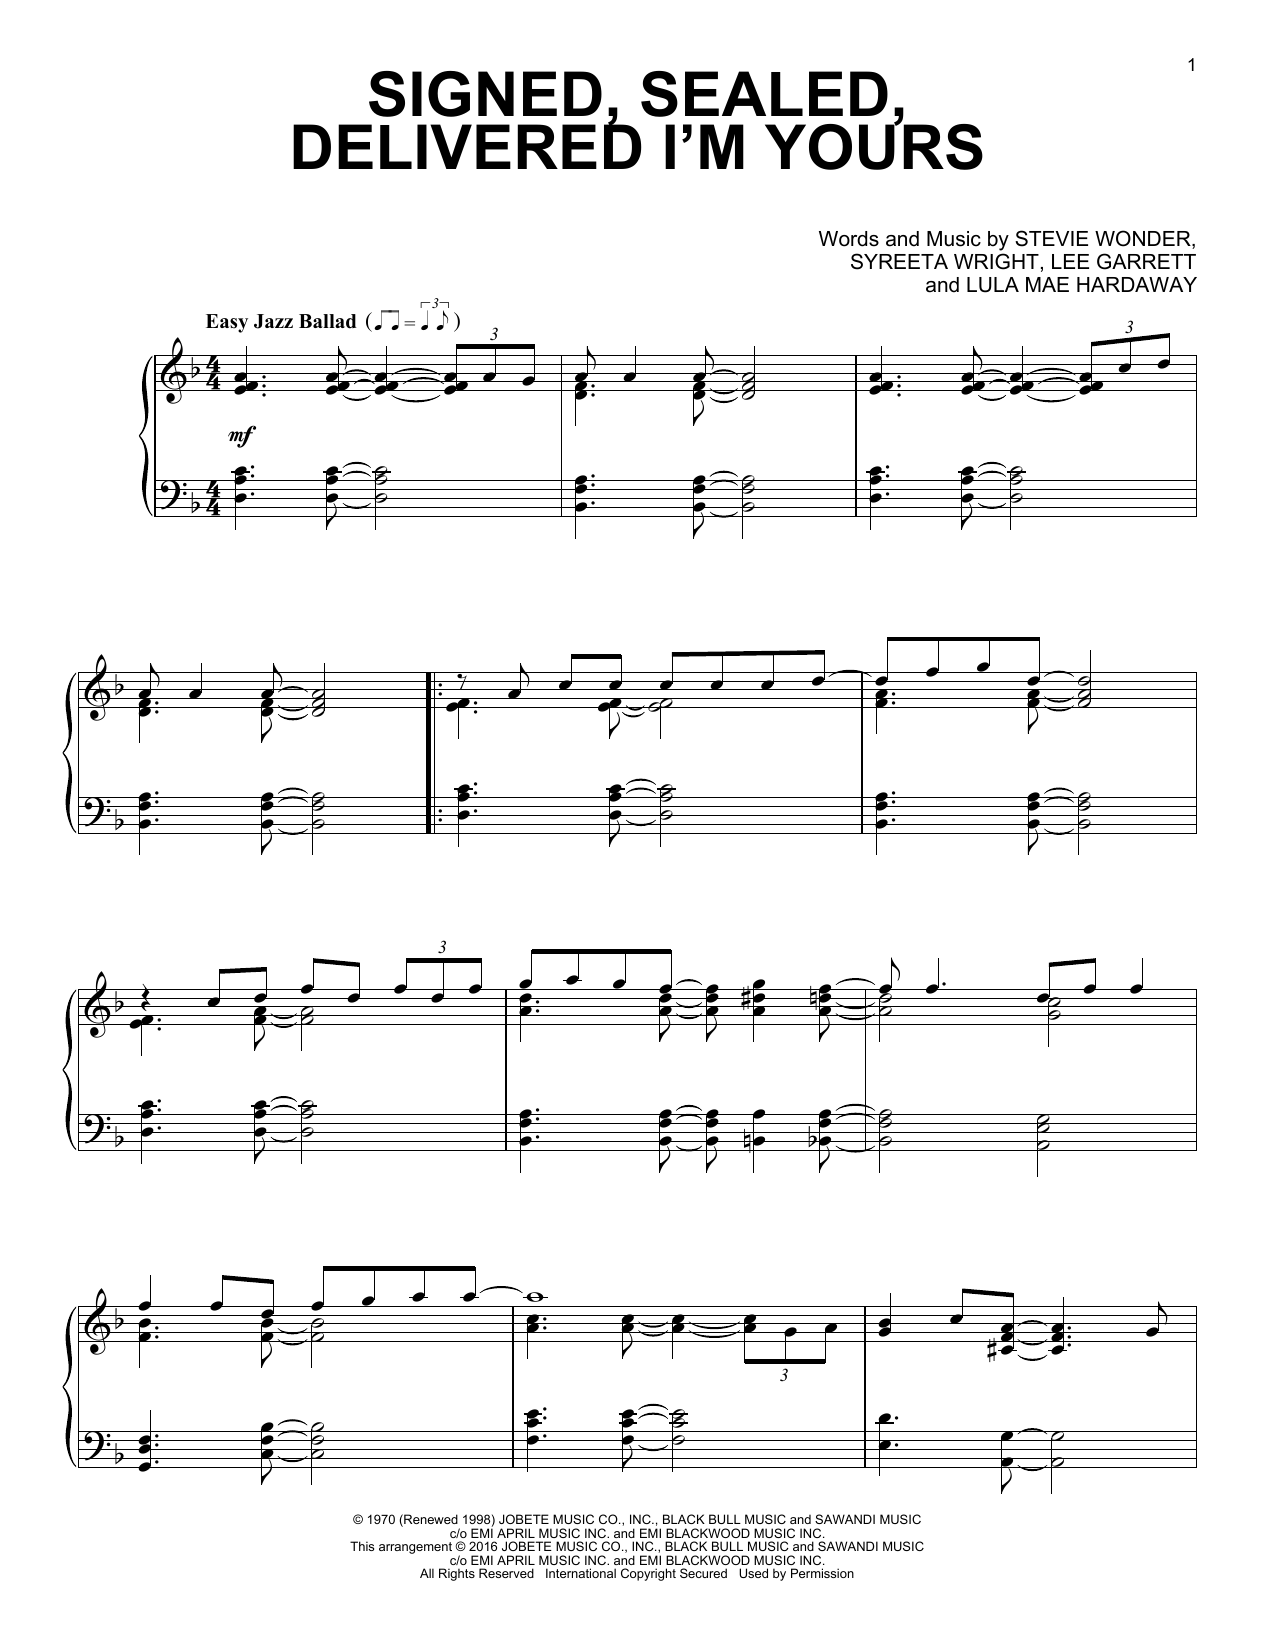 Stevie Wonder 'Signed, Sealed, Delivered I'm Yours' Sheet Music Notes,  Chords | Download Printable Piano - SKU: 163864